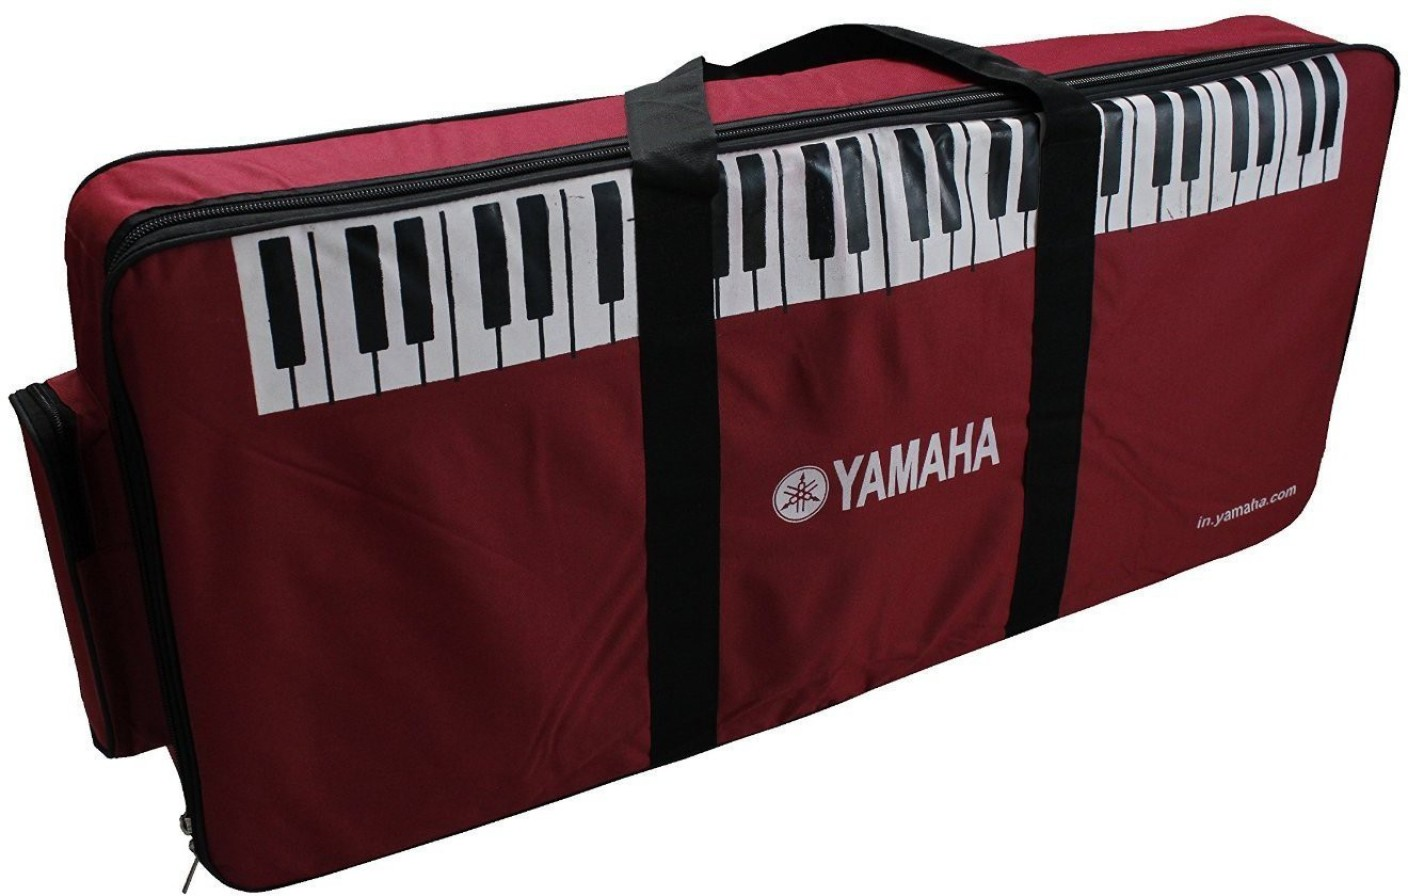 Yamaha psr i425 keyboard bag price in india buy yamaha for Yamaha keyboard i425